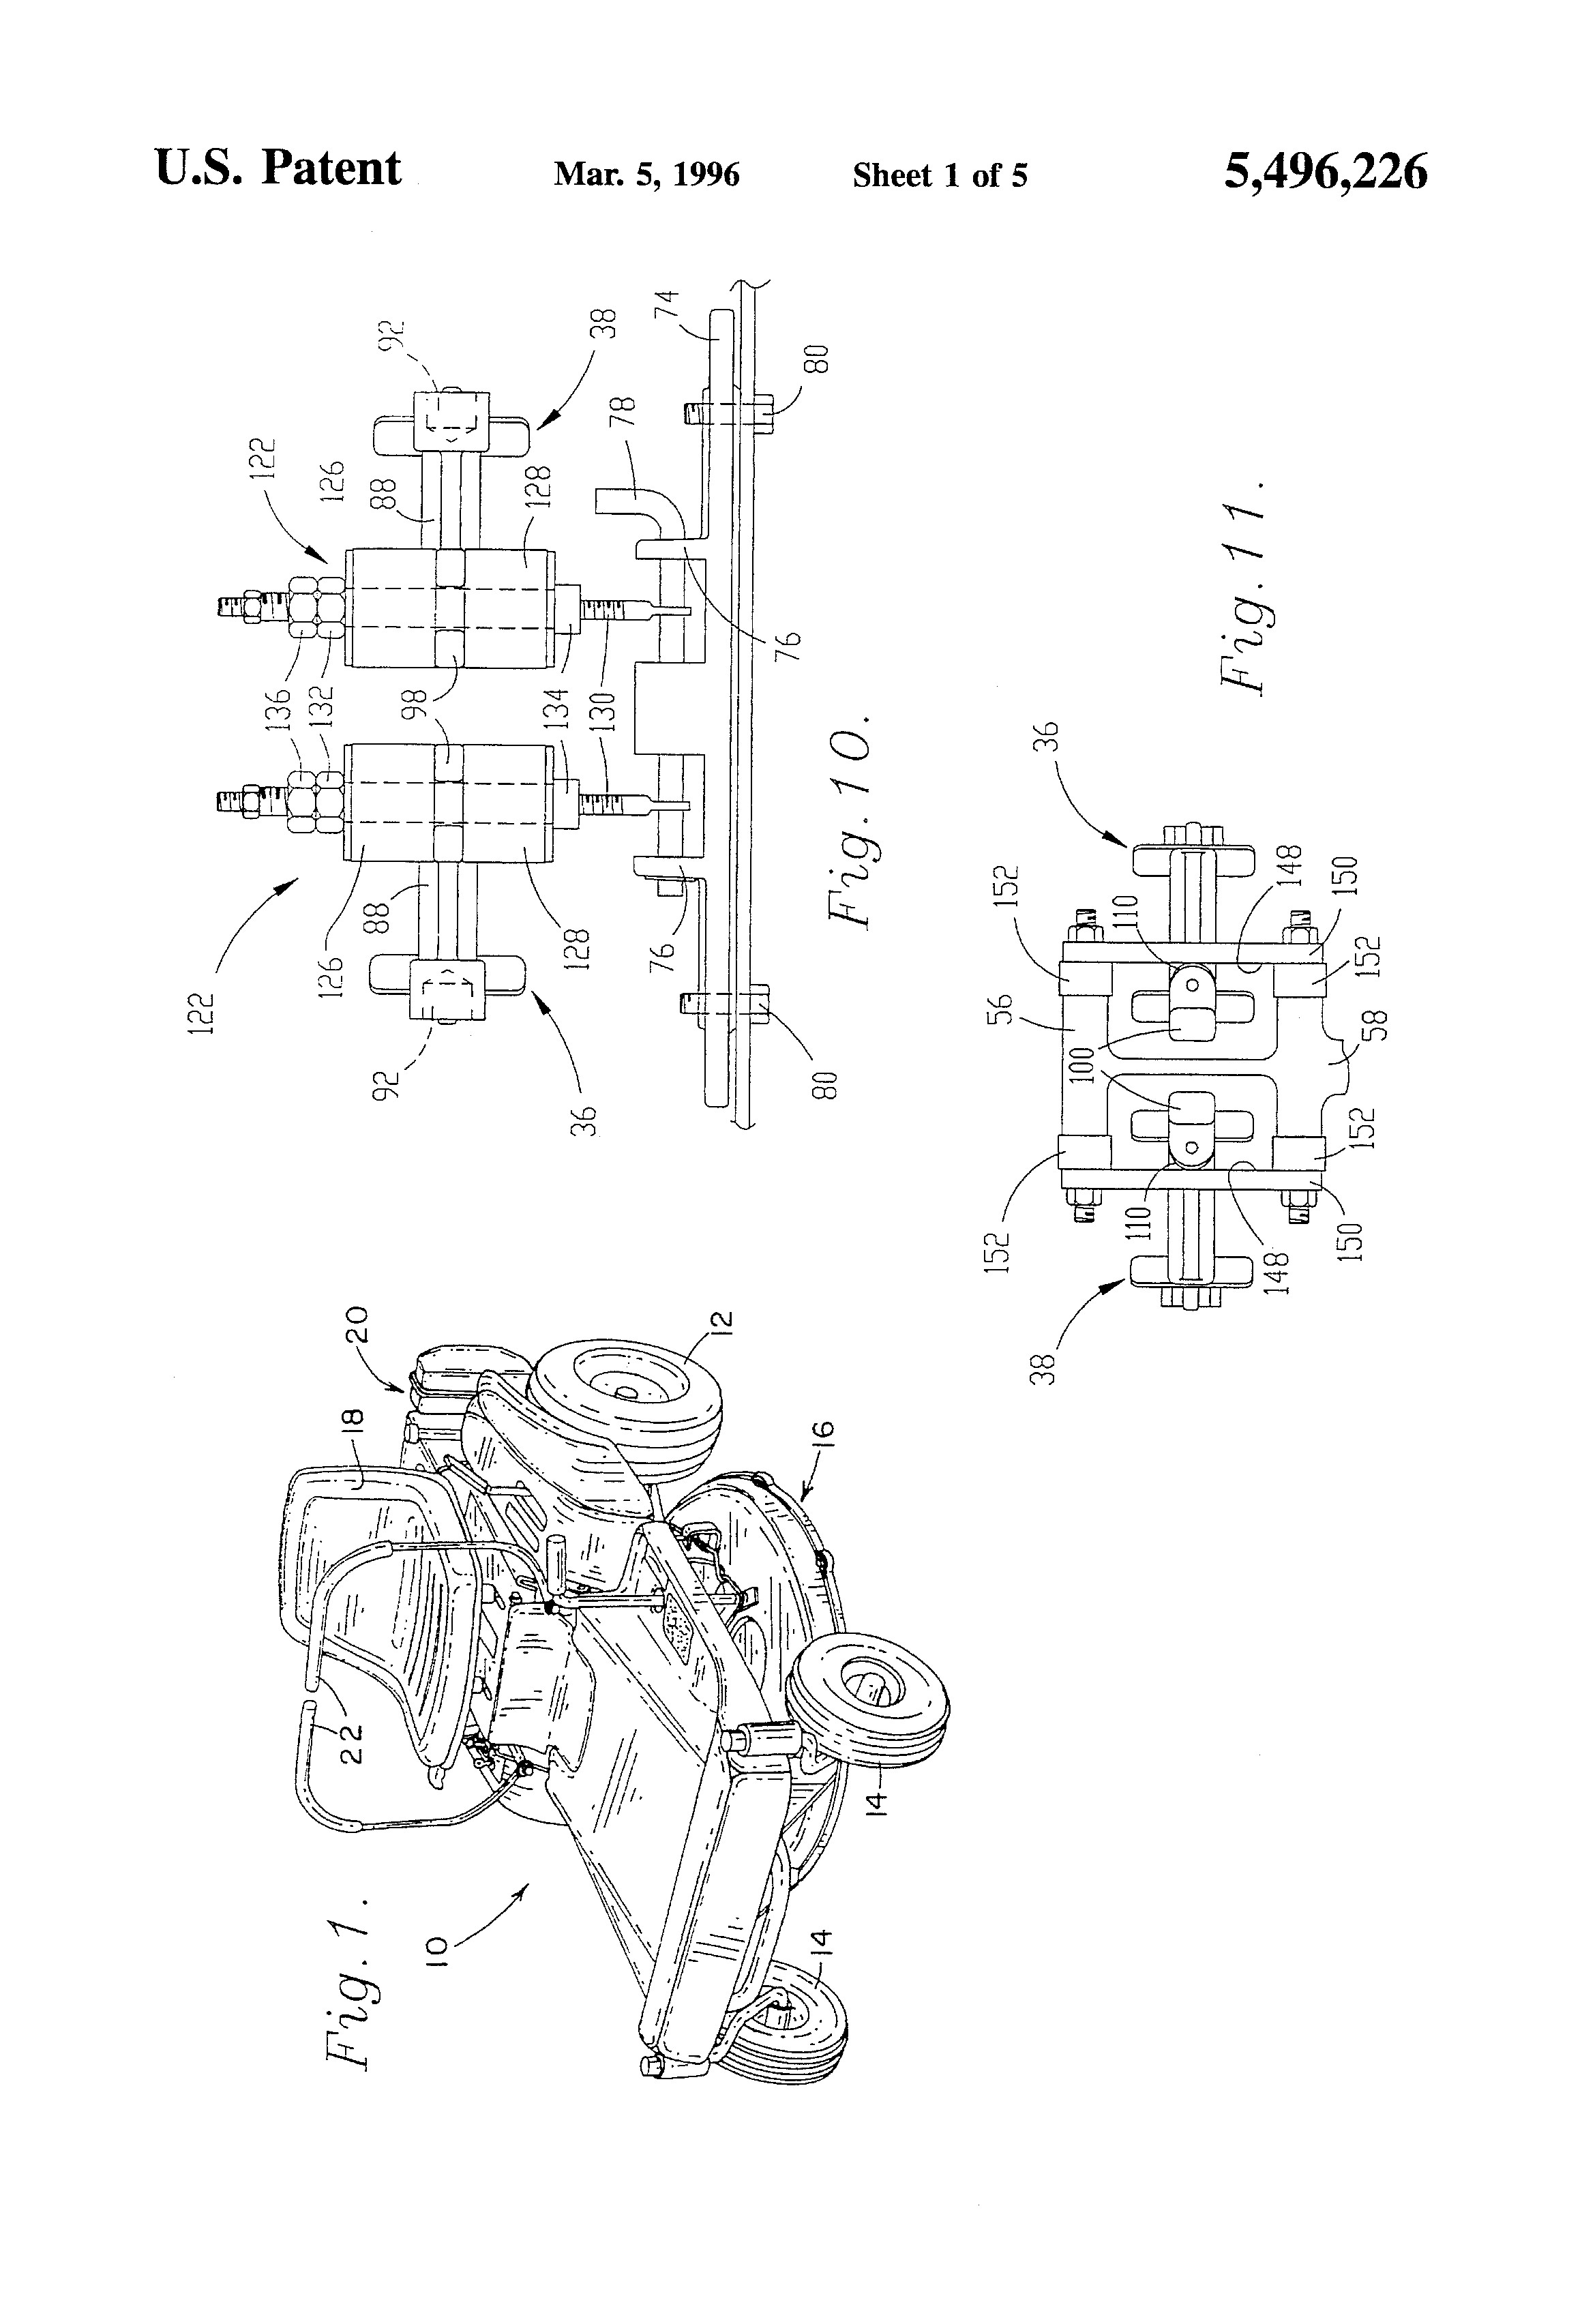 dixon lawn mower parts diagram patent us friction drive